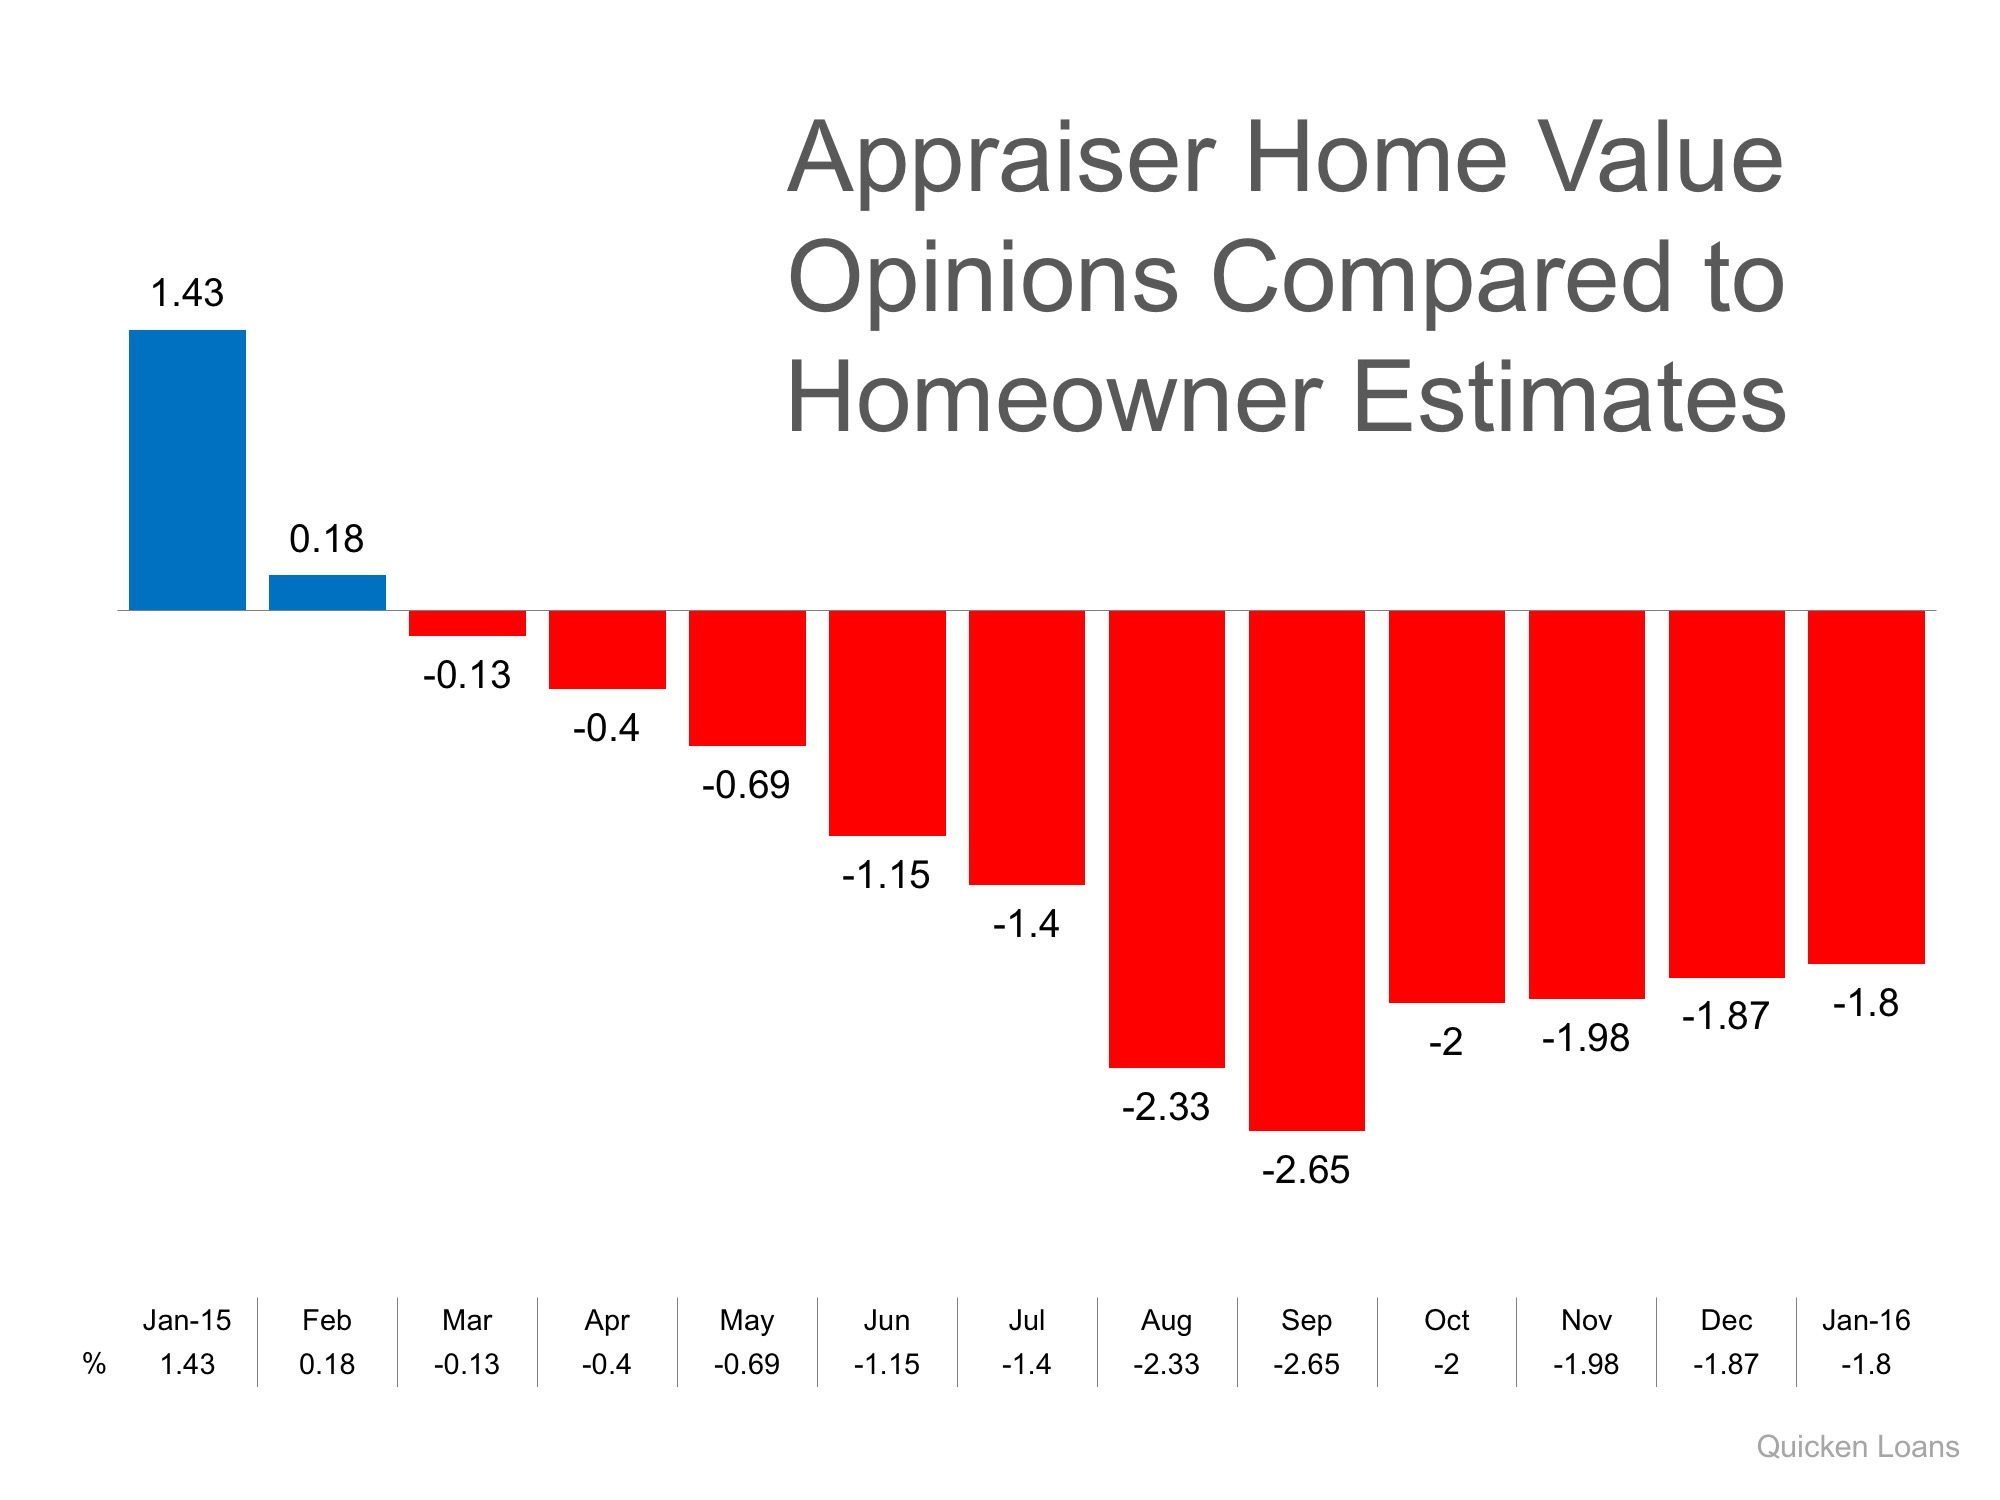 Appraiser Home Value Opinions vs. Homeowner Estimates | Simplifying The Market